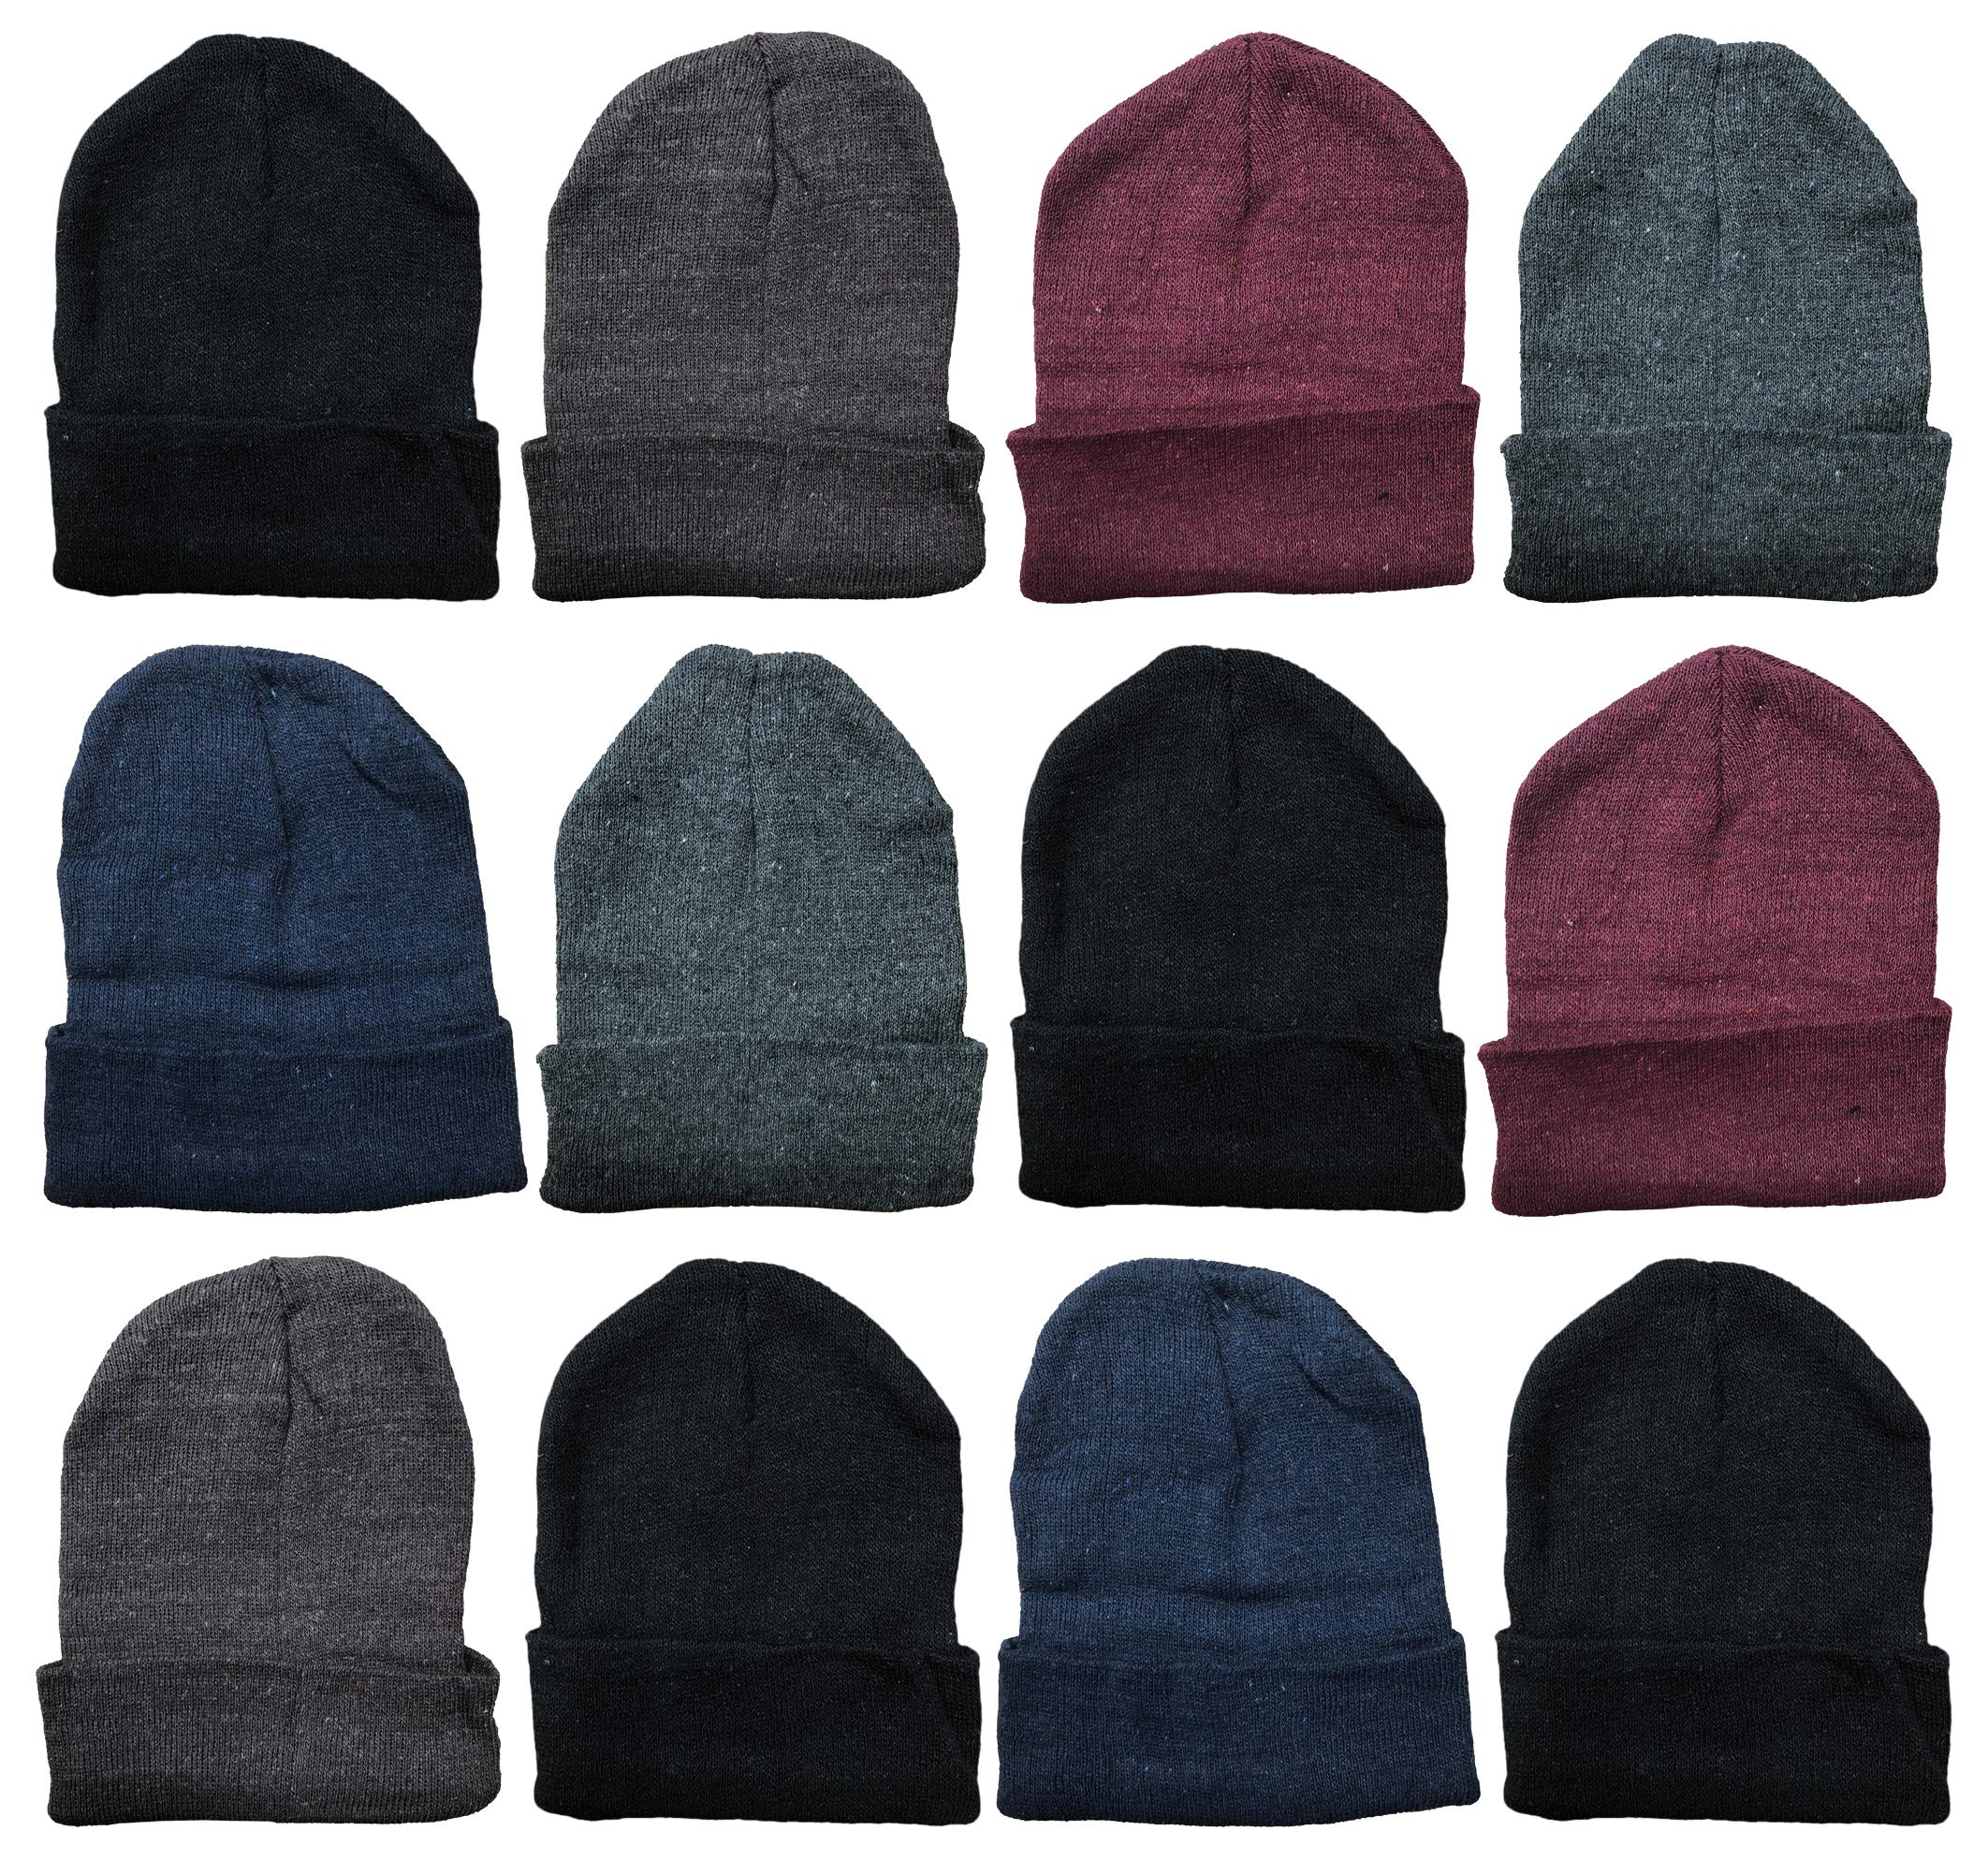 Yacht & Smith Mens Womens Warm Winter Hats in Assorted Colors, Mens Womens Unisex (12 Pack Assorted Solids (B)) by Yacht & Smith